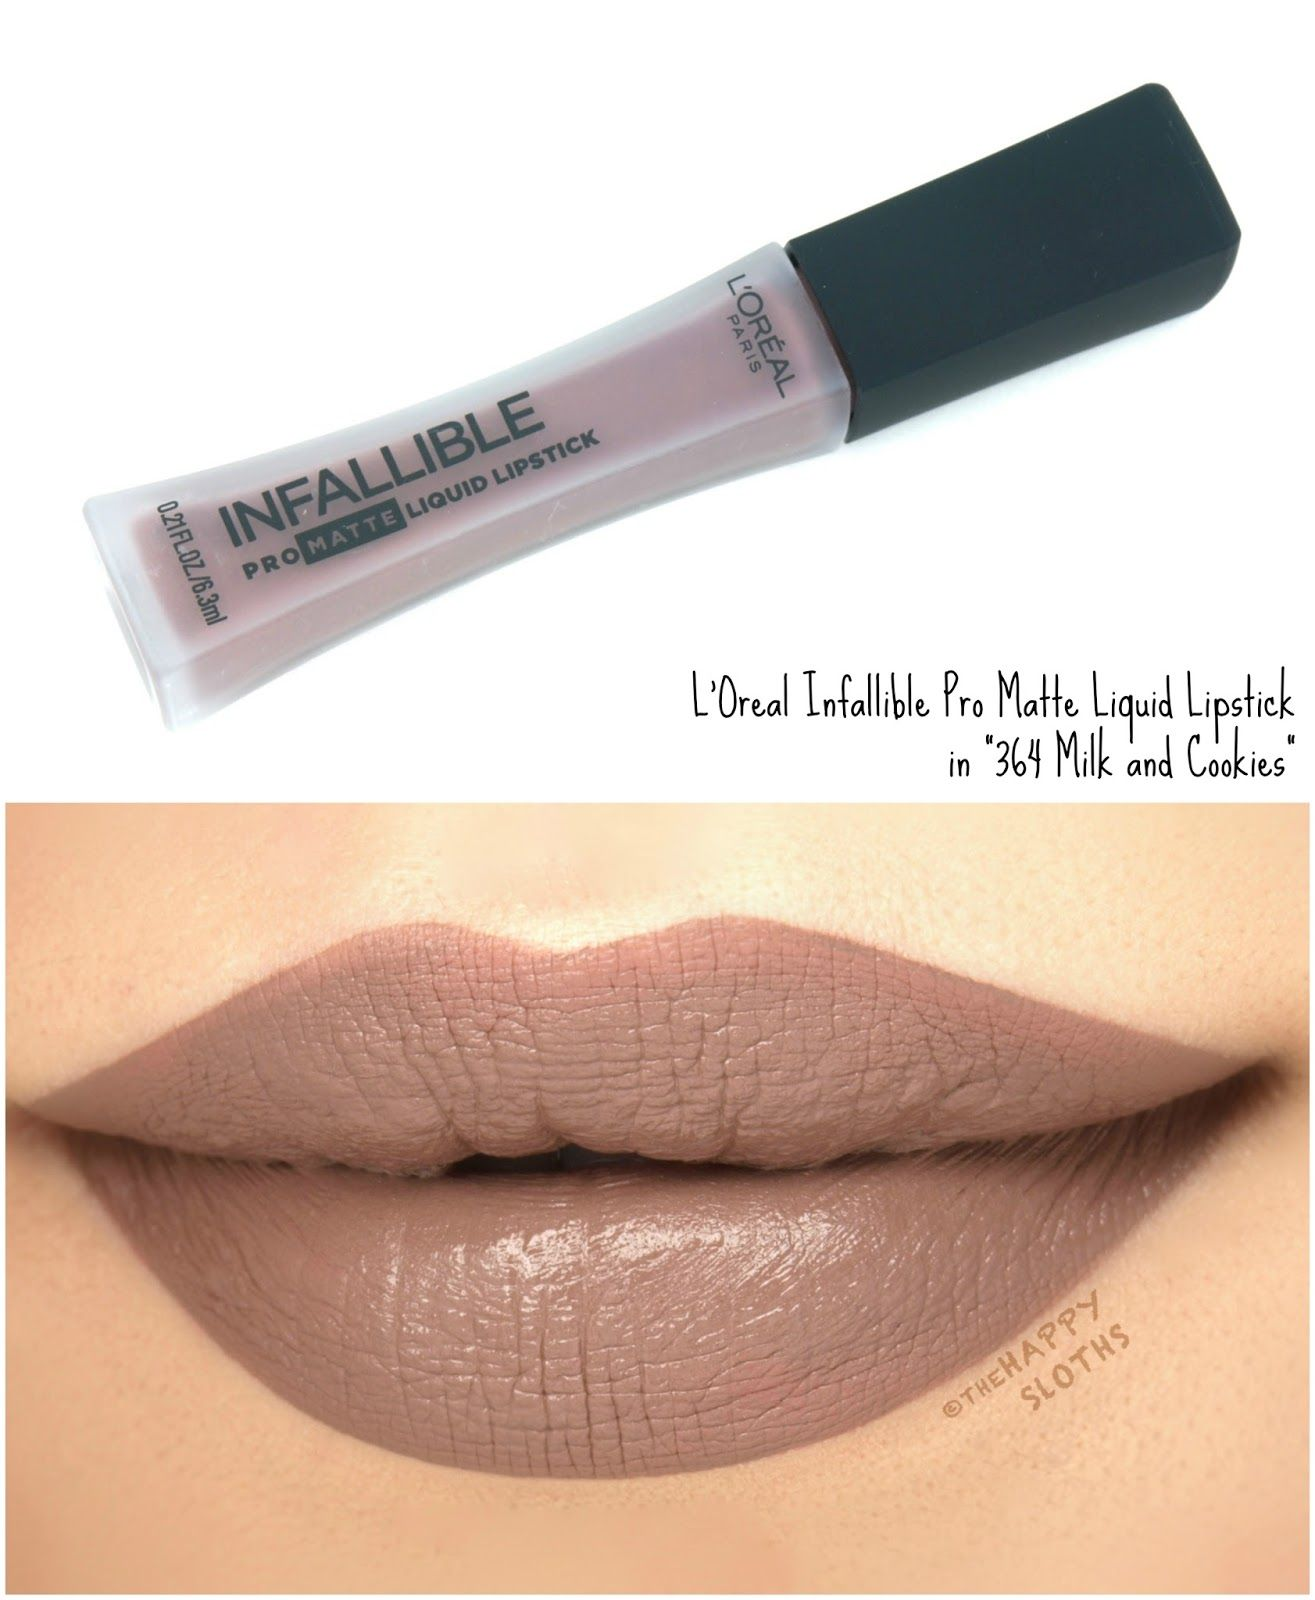 L'Oreal Infallible Pro Matte Liquid Lipsticks Review and